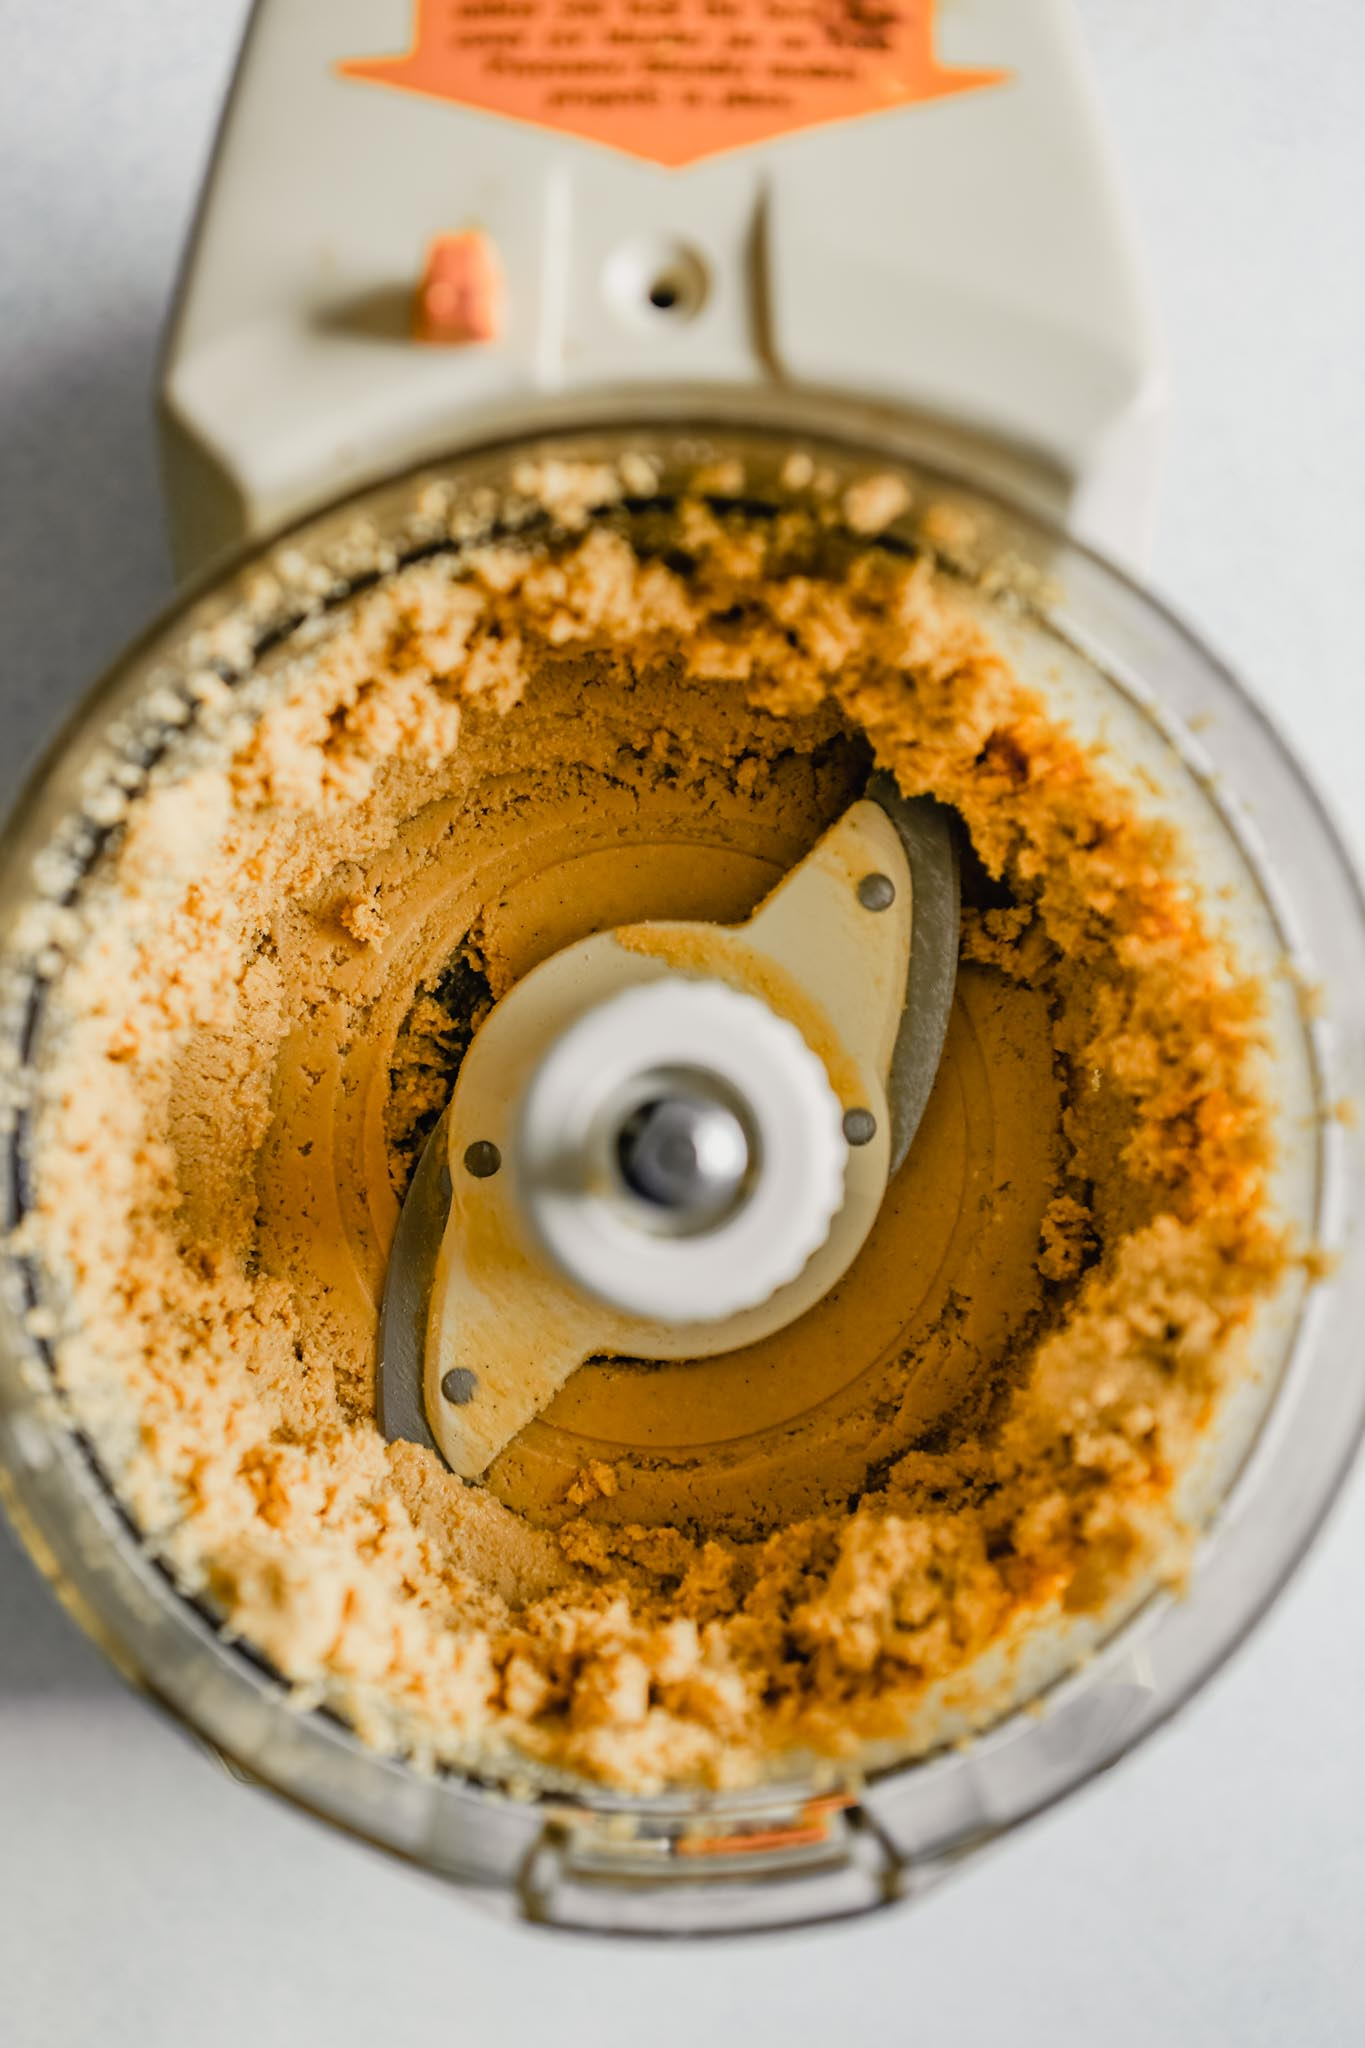 Photo of cashews being blended in a food processor to make cashew butter